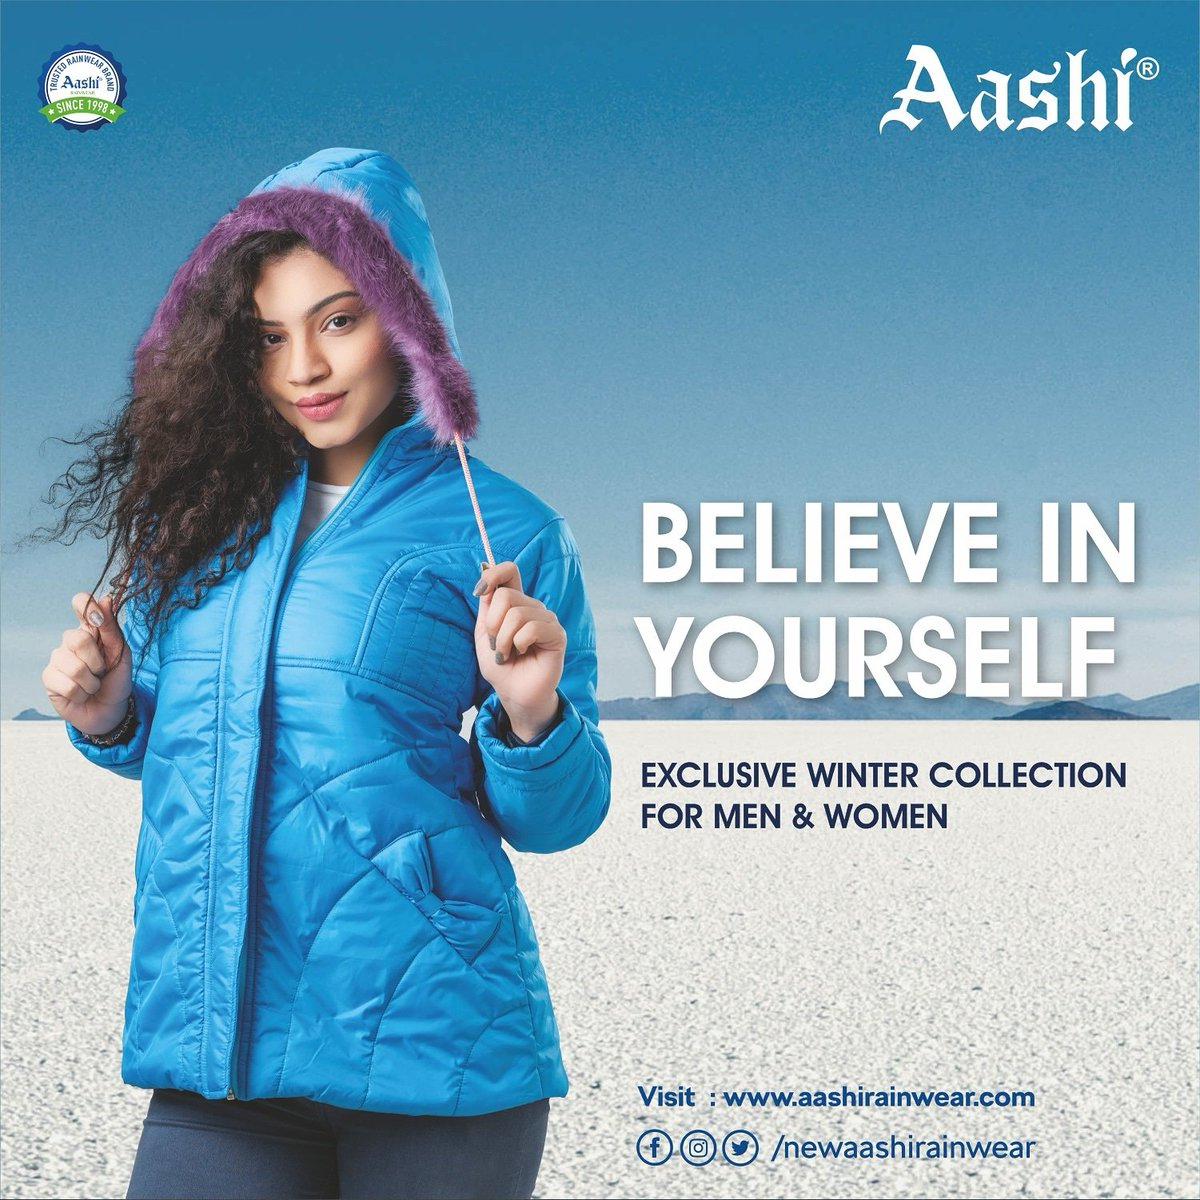 Keep smiling. One day life will get tired of upsetting you.  #friends #life #smiling #winterwear #winter #style #fashion #Hoodies #Aashi #winterjacket #winterlover #Outfits #winterwalks #SundayMorning #newaashirainwear #VocalForLocal Please visit